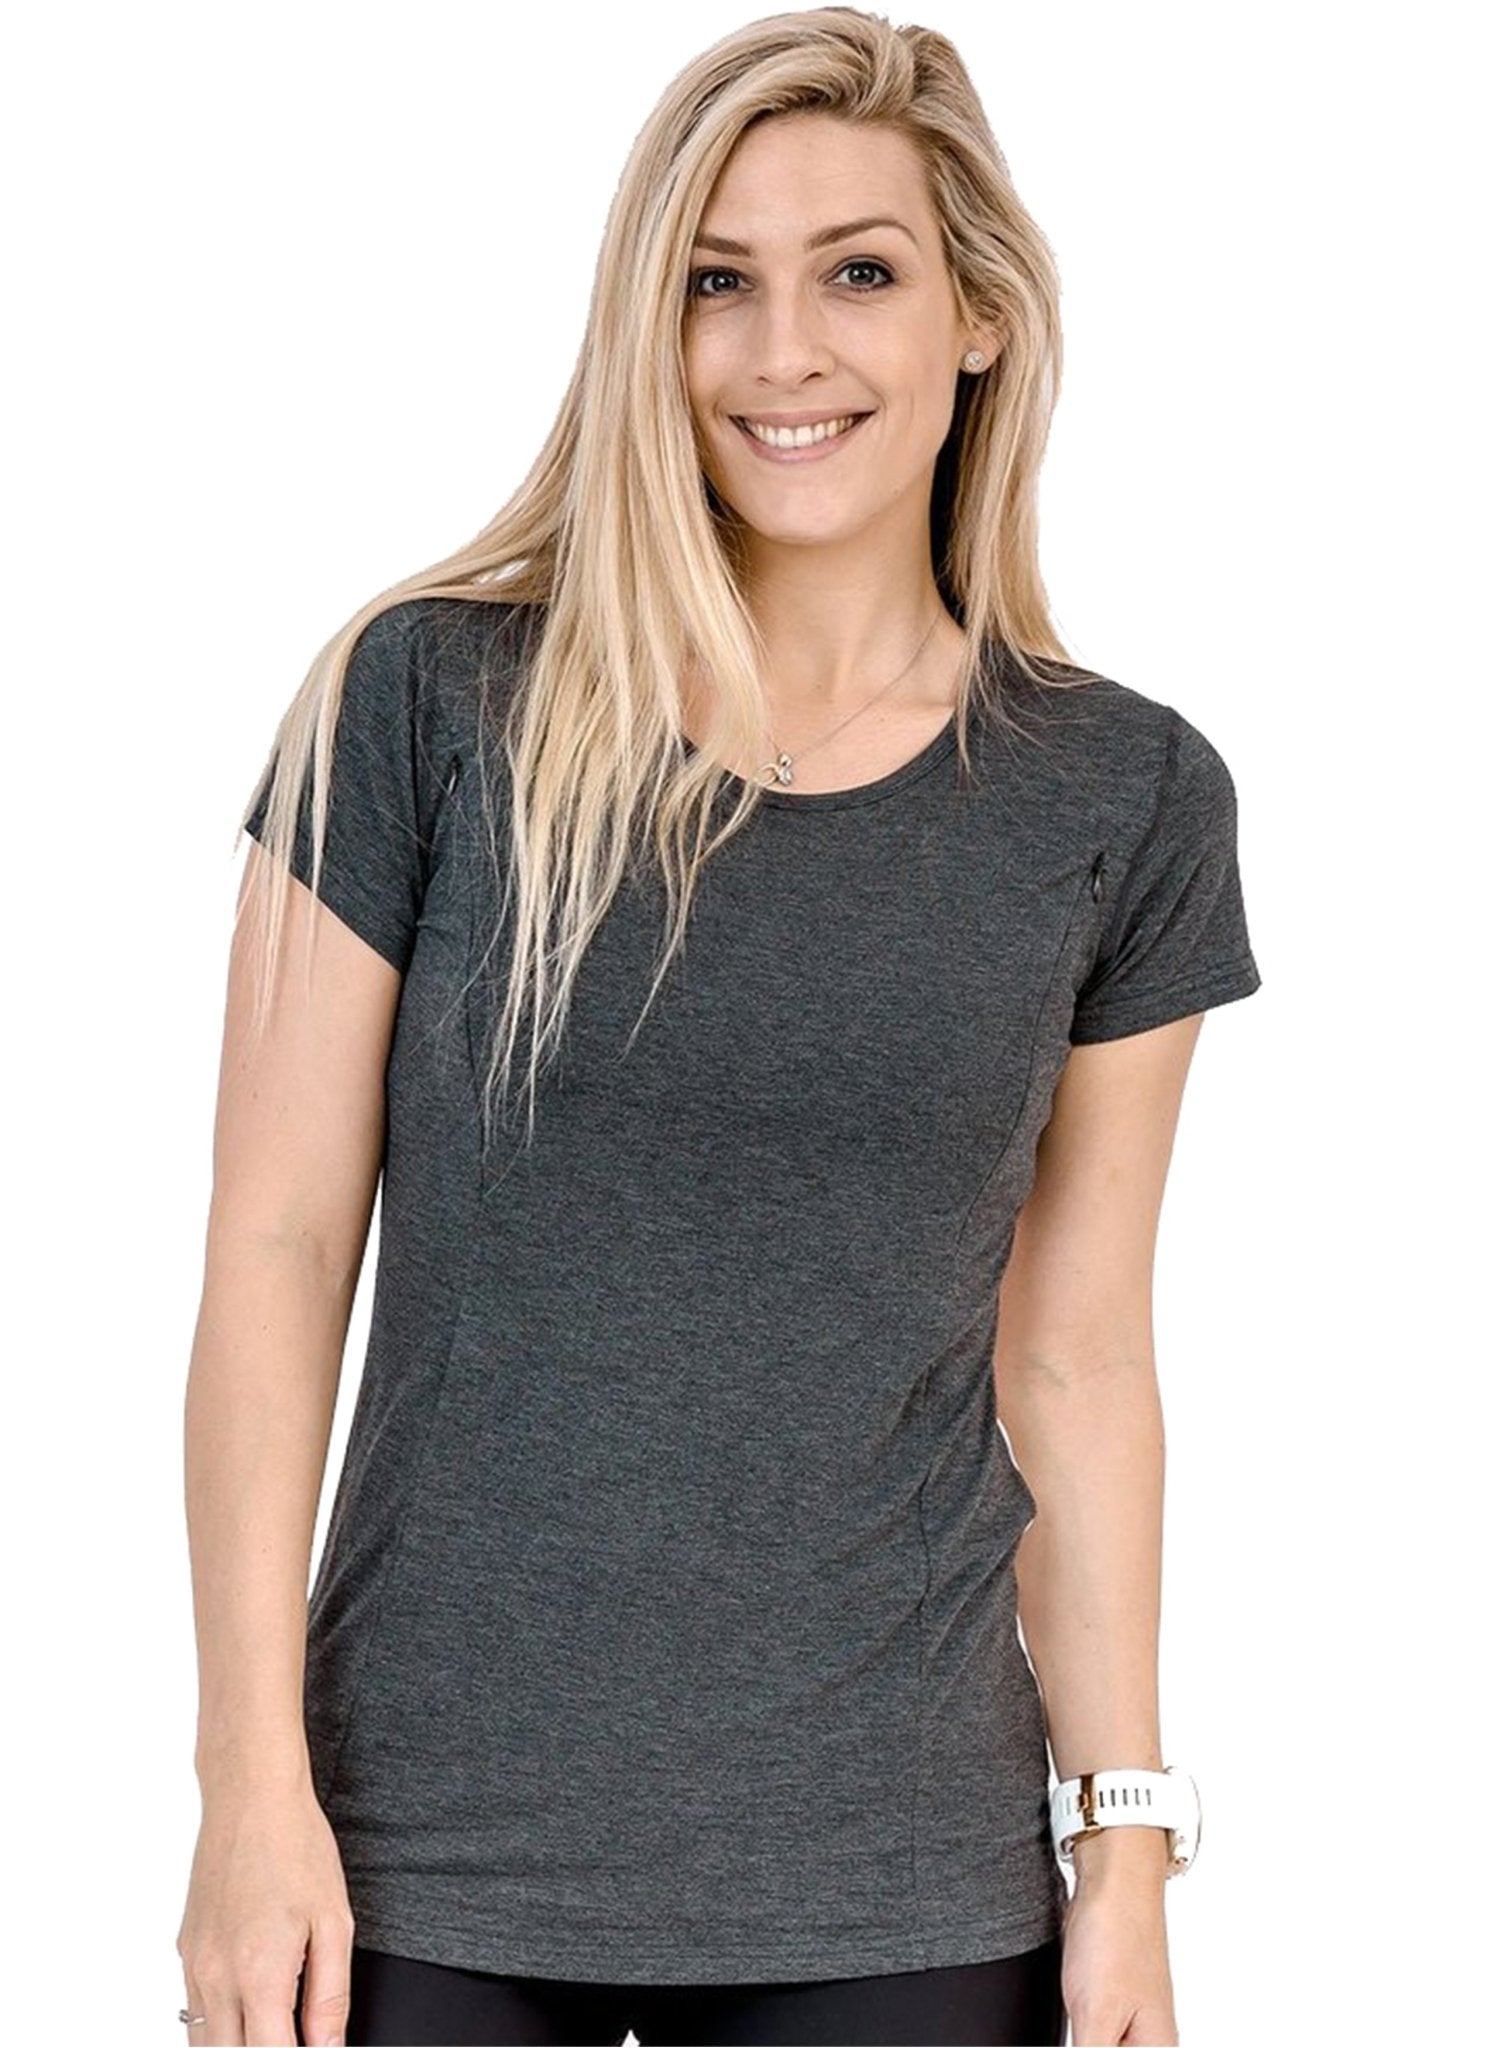 Breastfeeding Bamboo T-Shirt - Workout Tee Dark Grey - Mums and Bumps